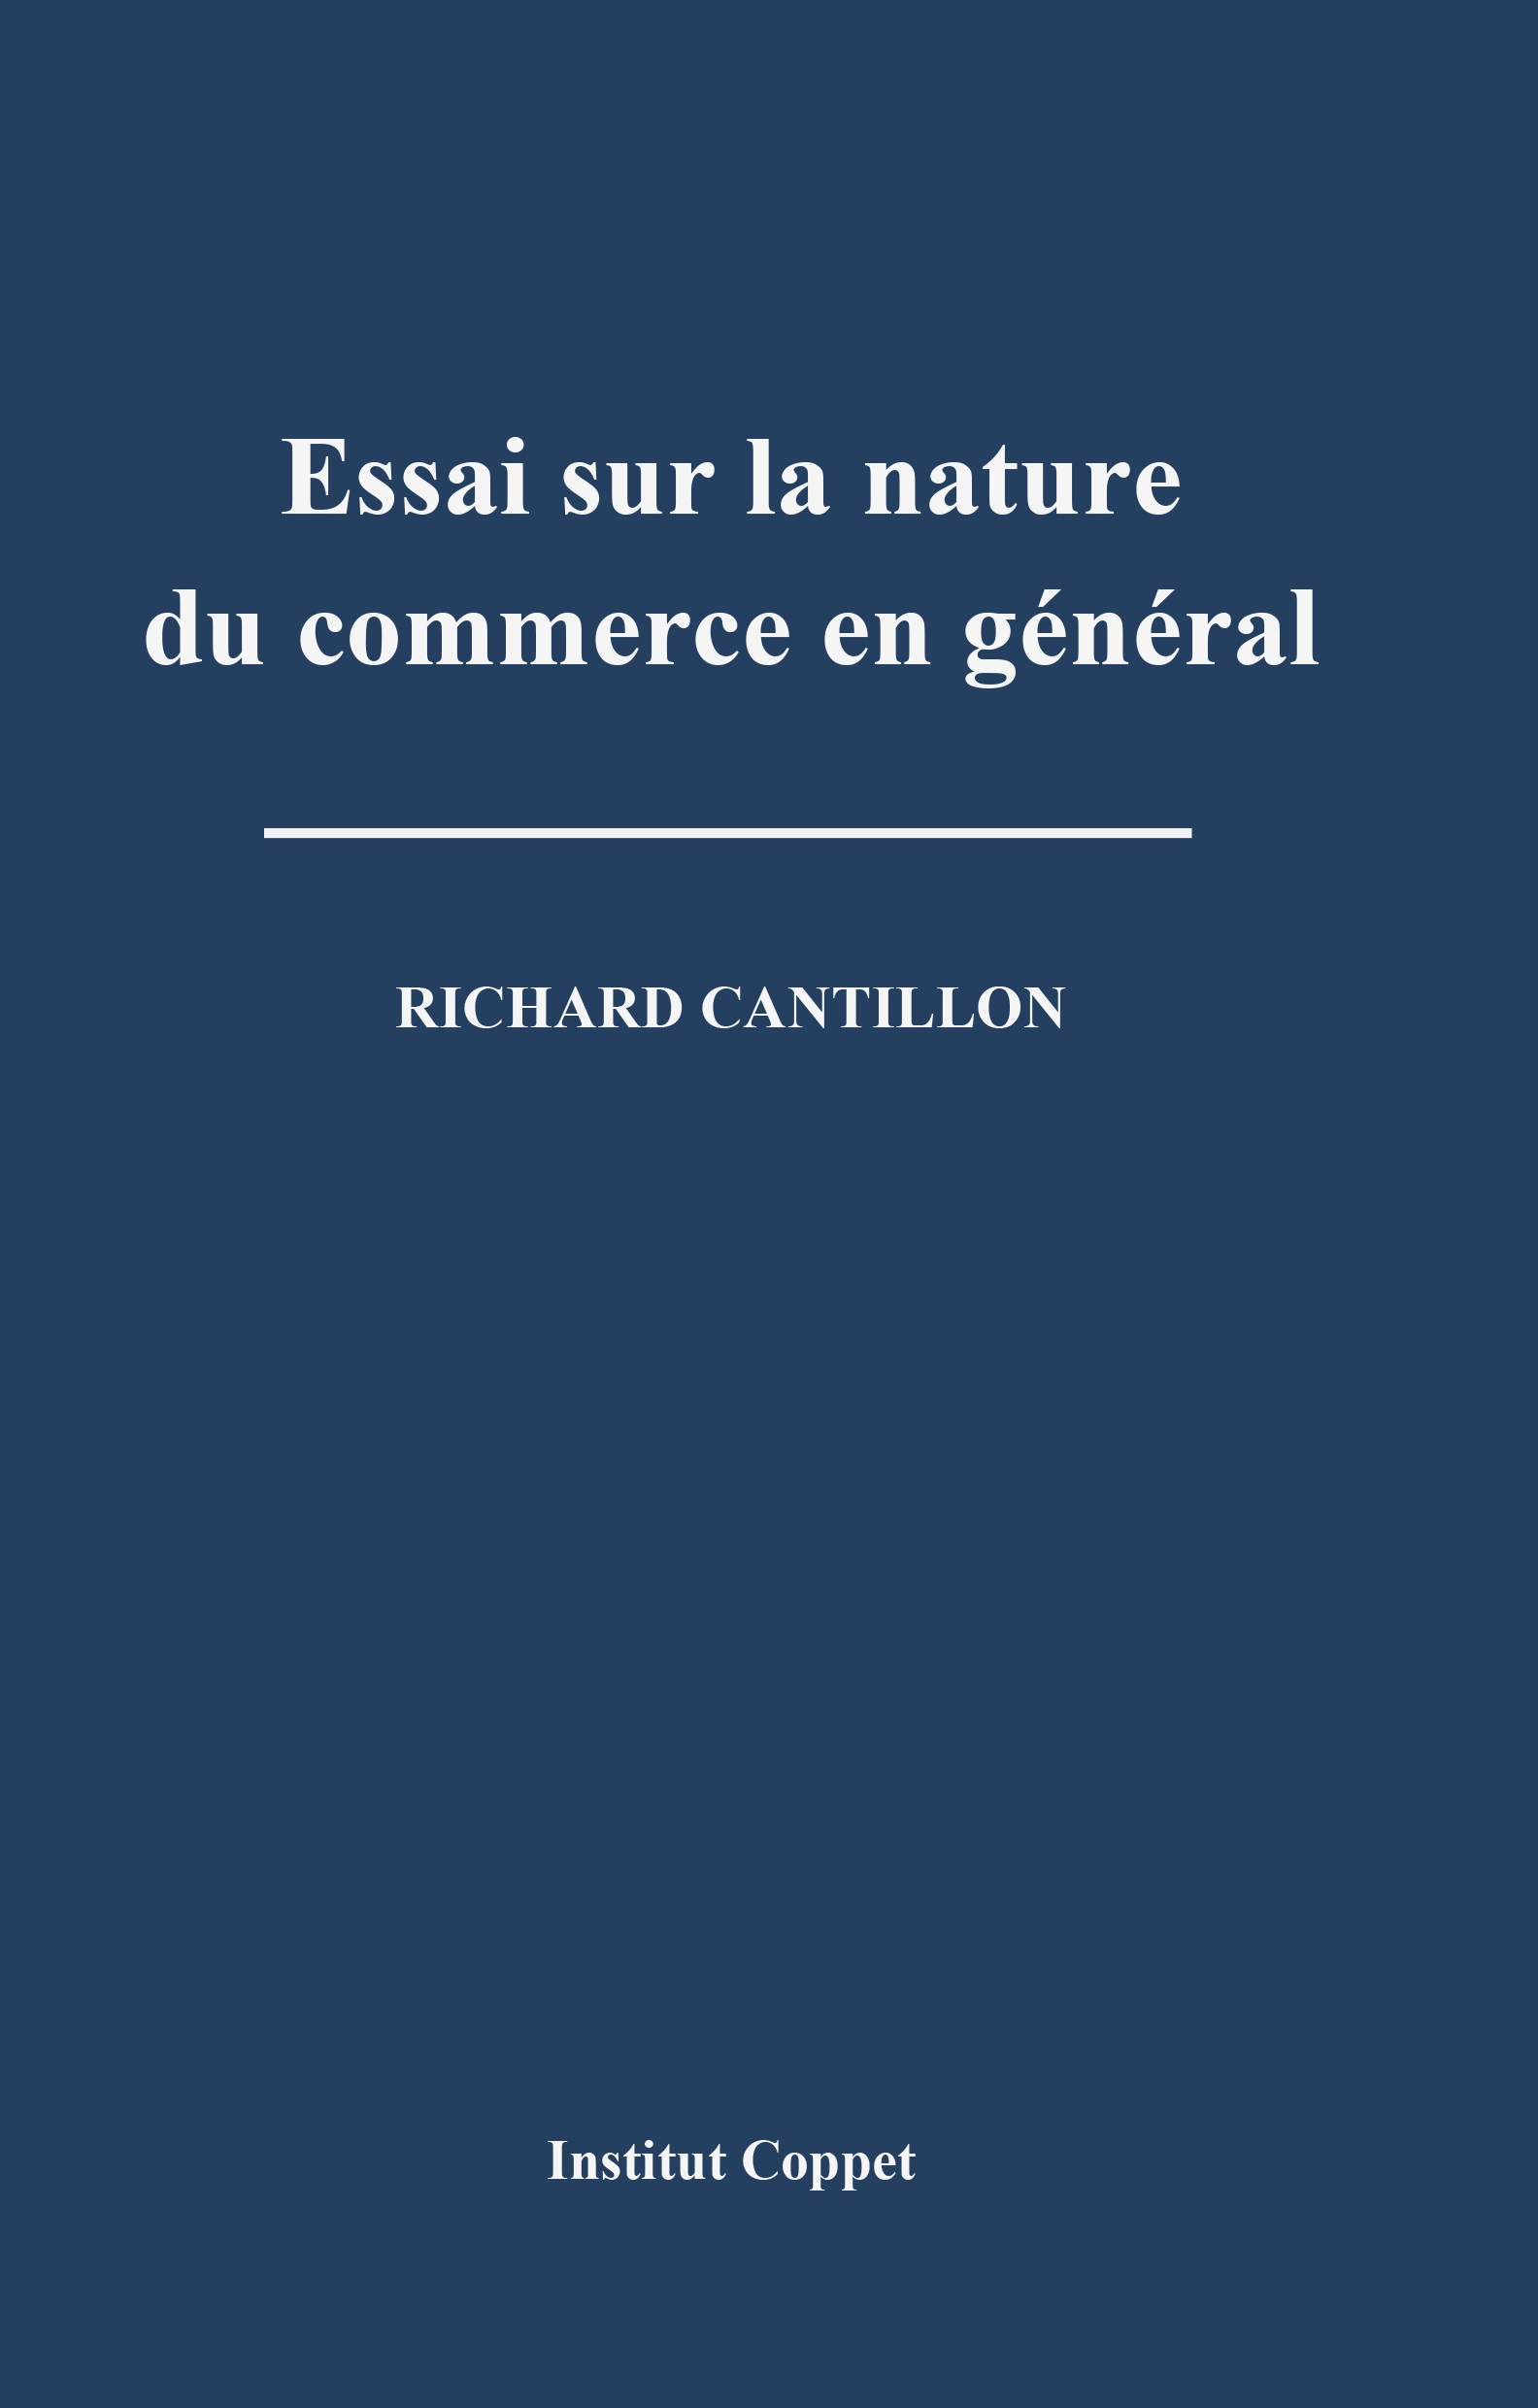 an essay on economic theory cantillon Richard cantillon was an irish-french economist and author of essai sur la nature du commerce en général (essay on the nature of trade in general), a boo.